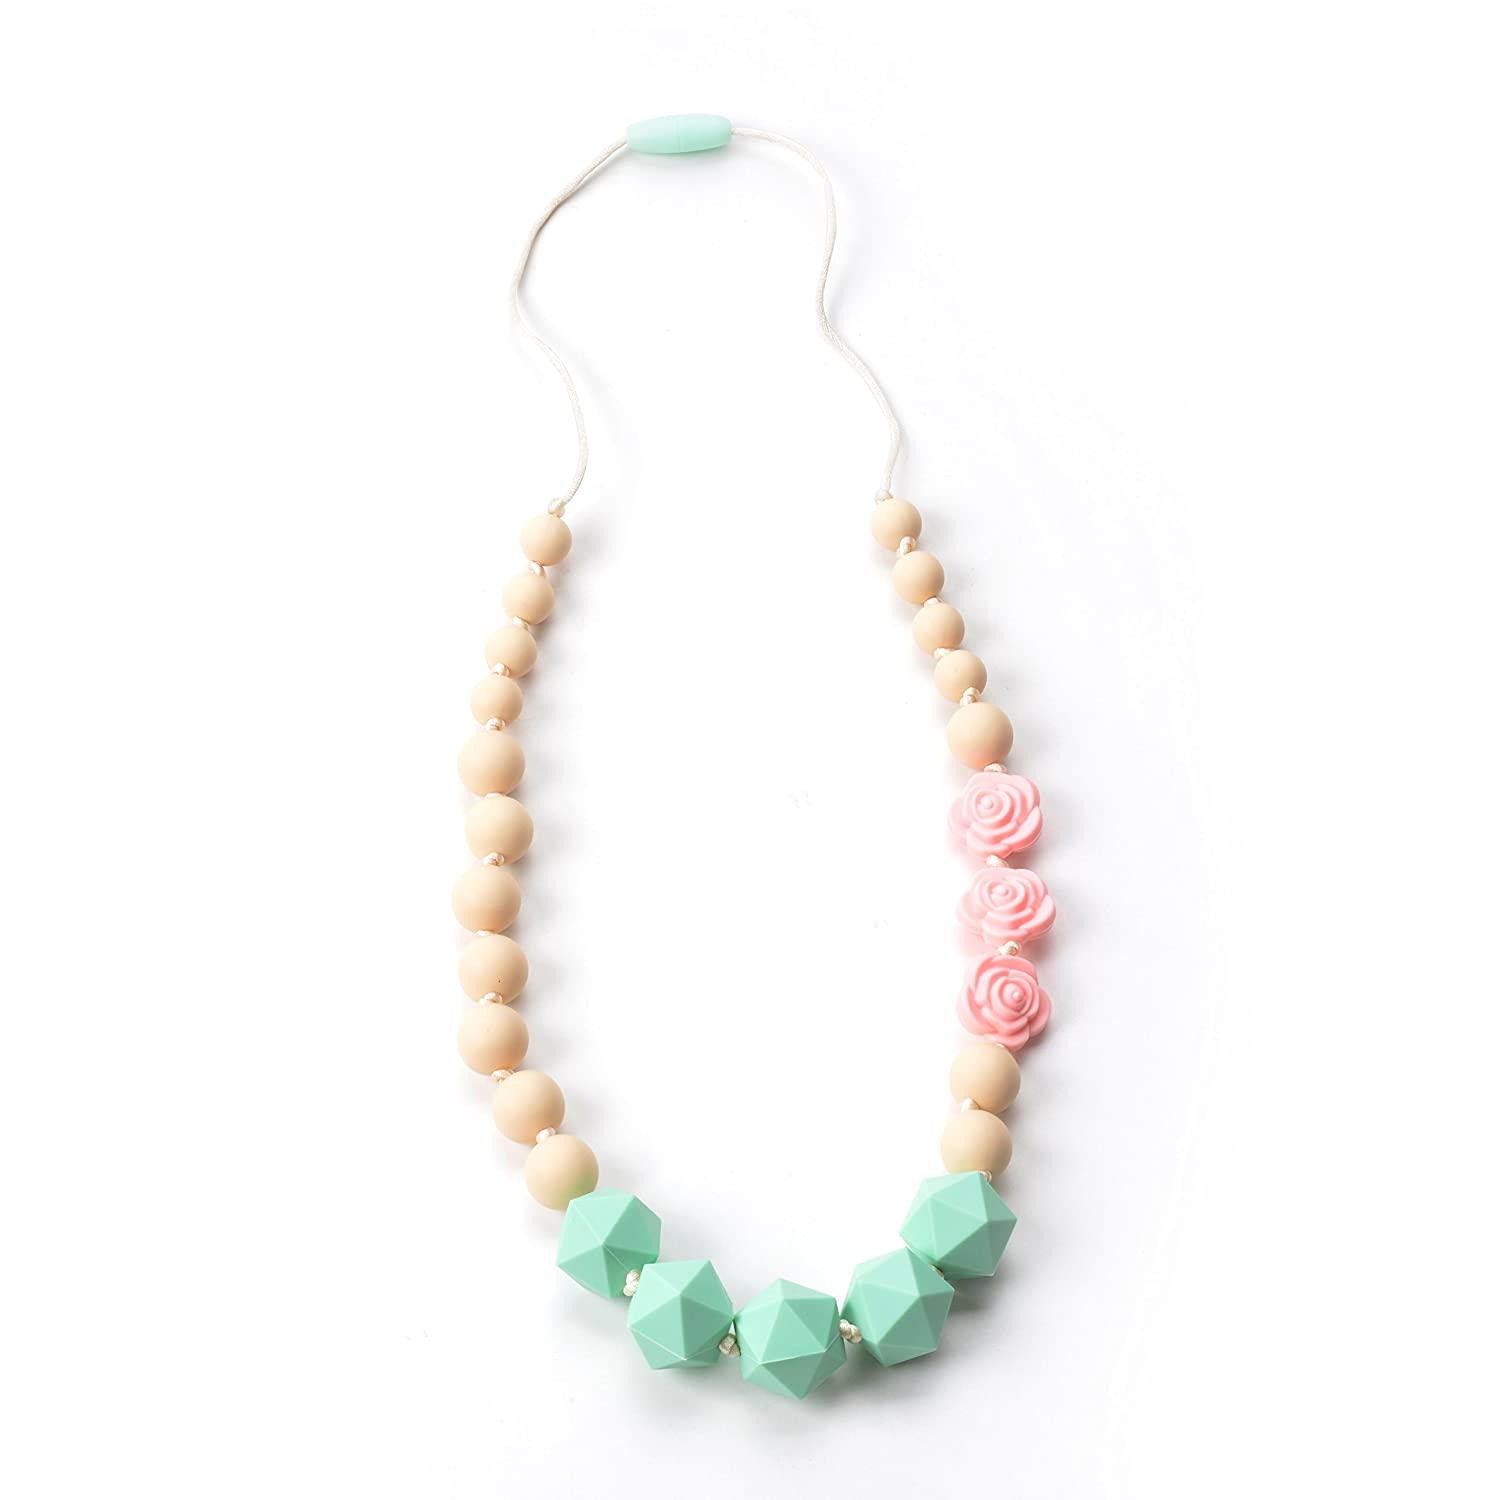 Nummy Beads Perwinkle Rose Silicone Baby Teething Necklace for Mom to Wear 100/% BPA Free